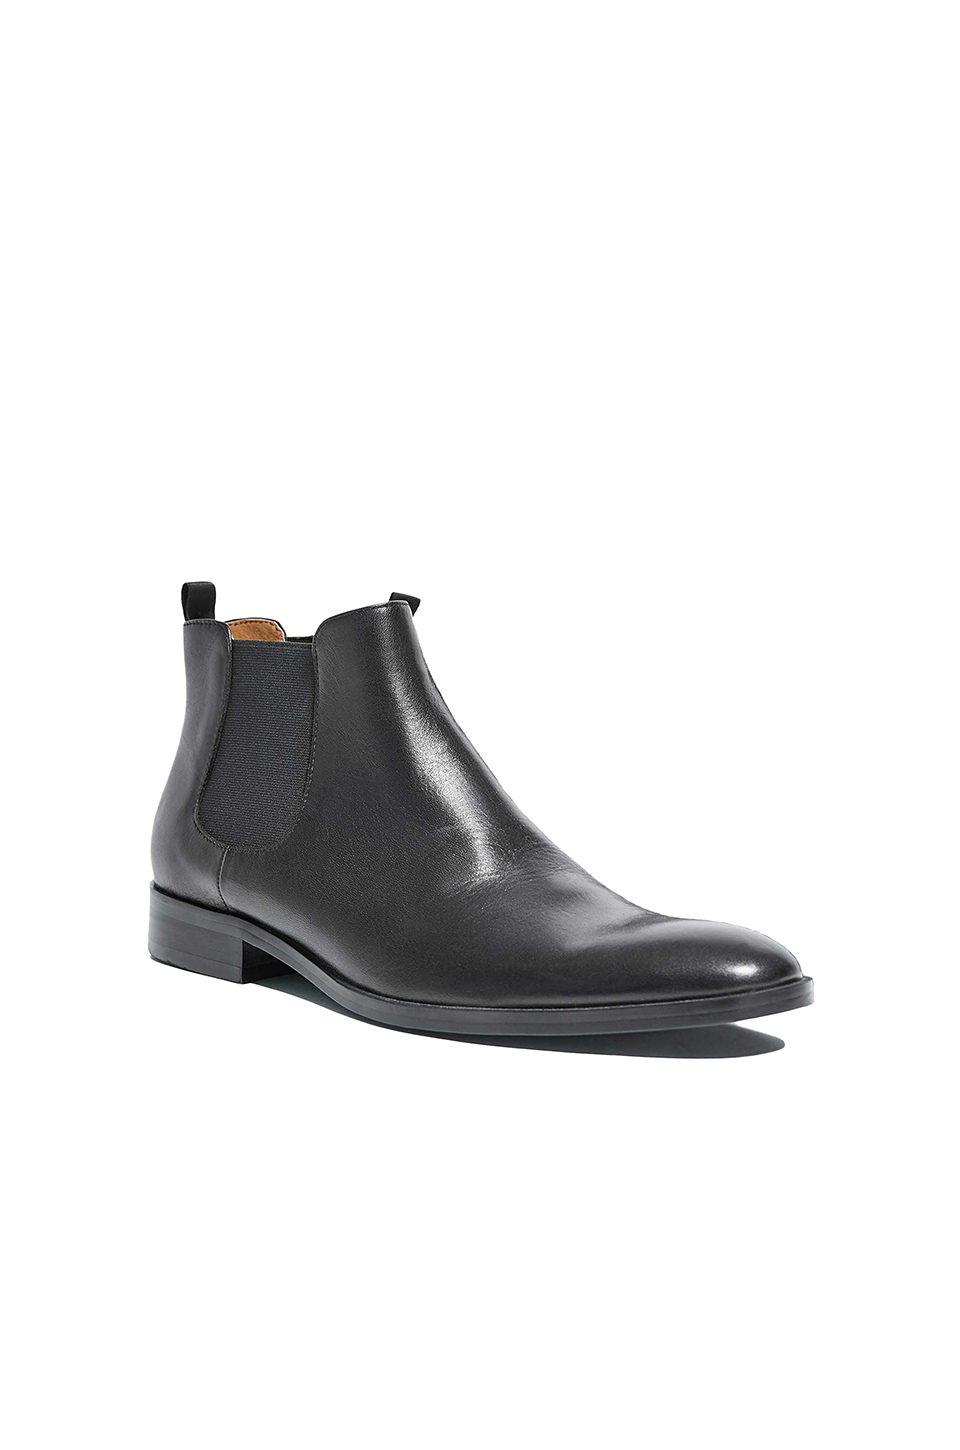 New Republic by Mark McNairy Trevor Chelsea Boot in Black